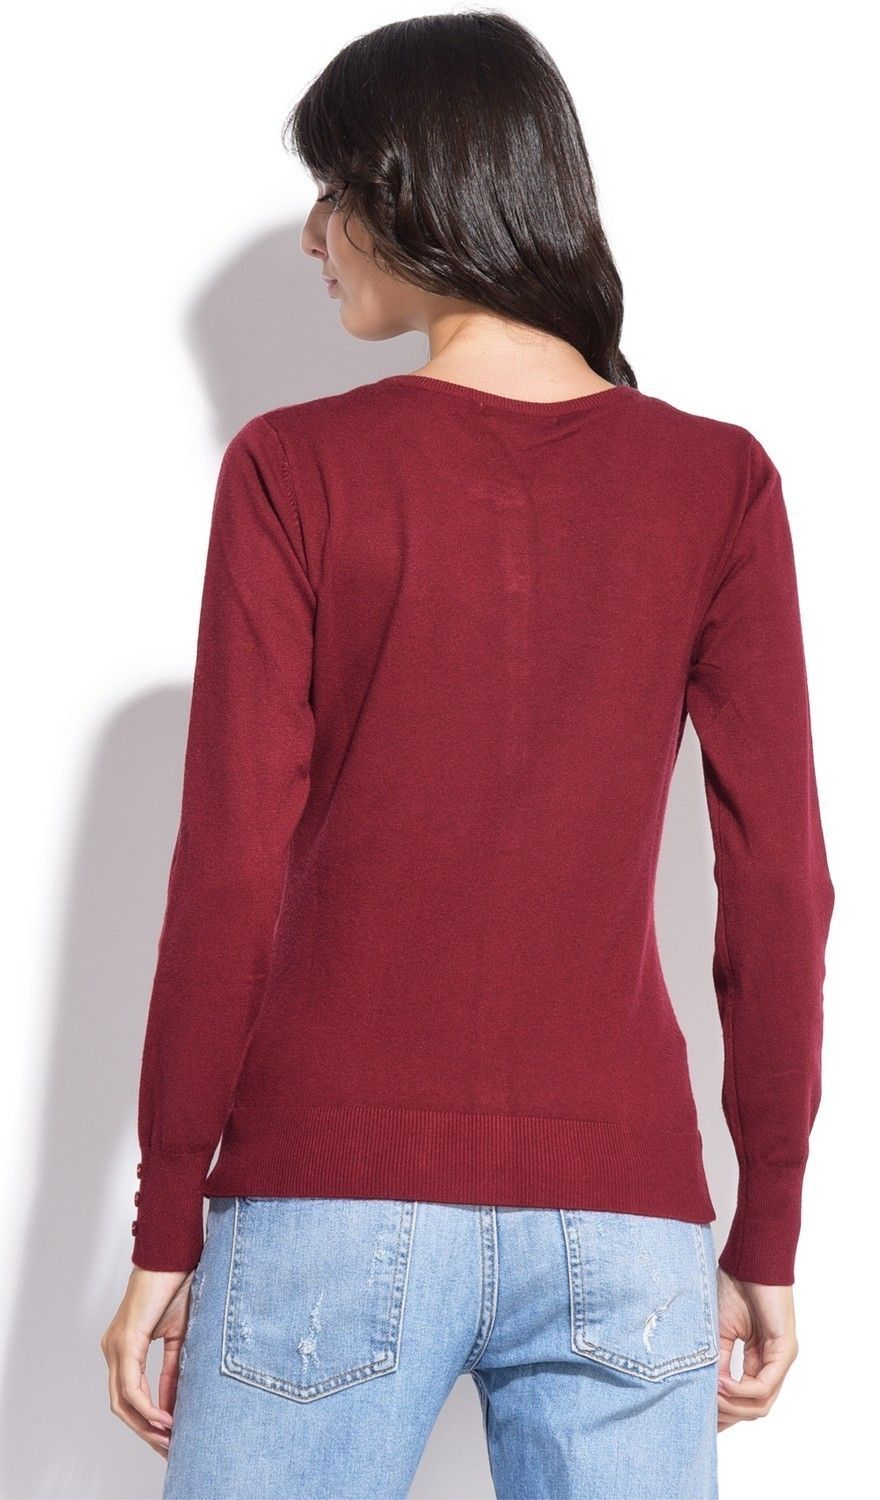 C&JO Round Neck Cardigan with Buttoned Sleeves in Maroon